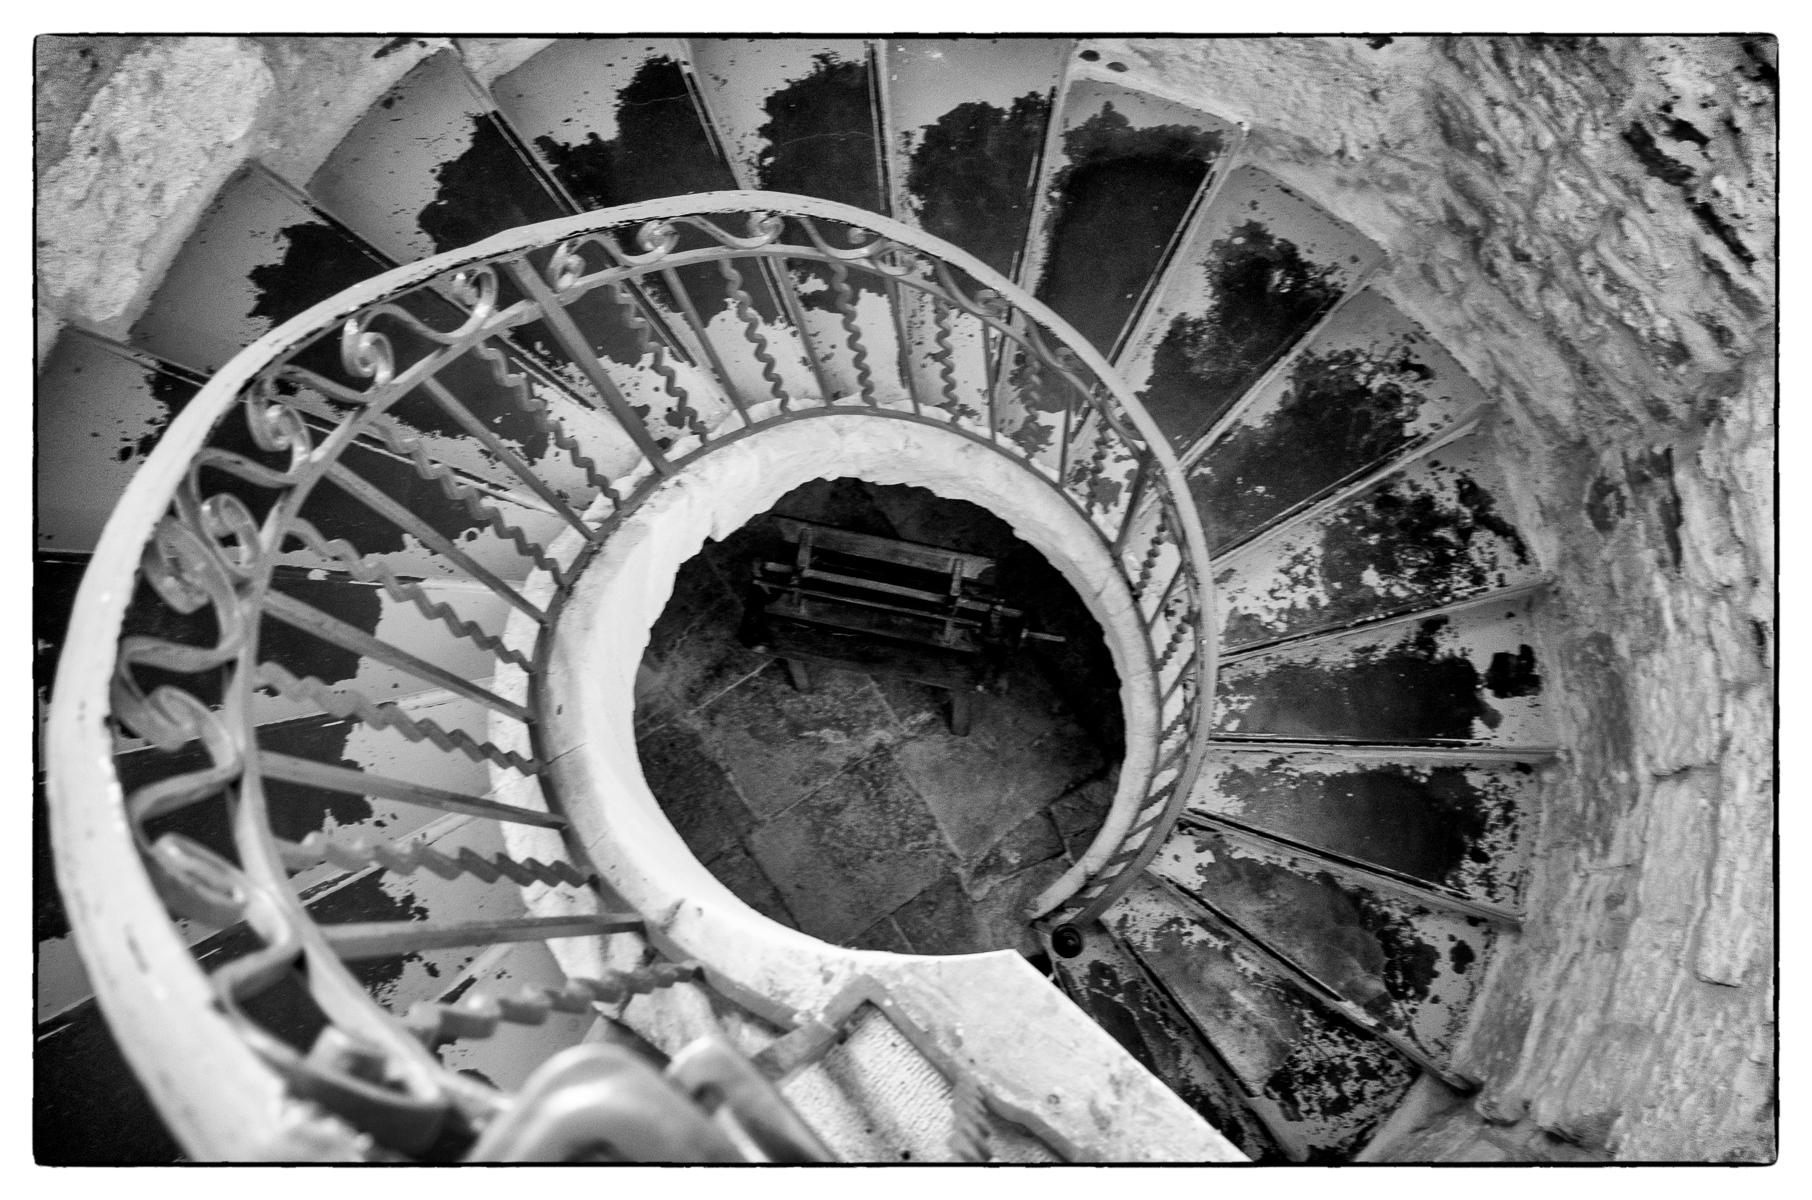 Stairwell, Provence : street & stories : TIMOTHY FLOYD PHOTOGRAPHER, NATURE PHOTOGRAPHY, PHOTO ESSAYS, PHOTOJOURNALISM